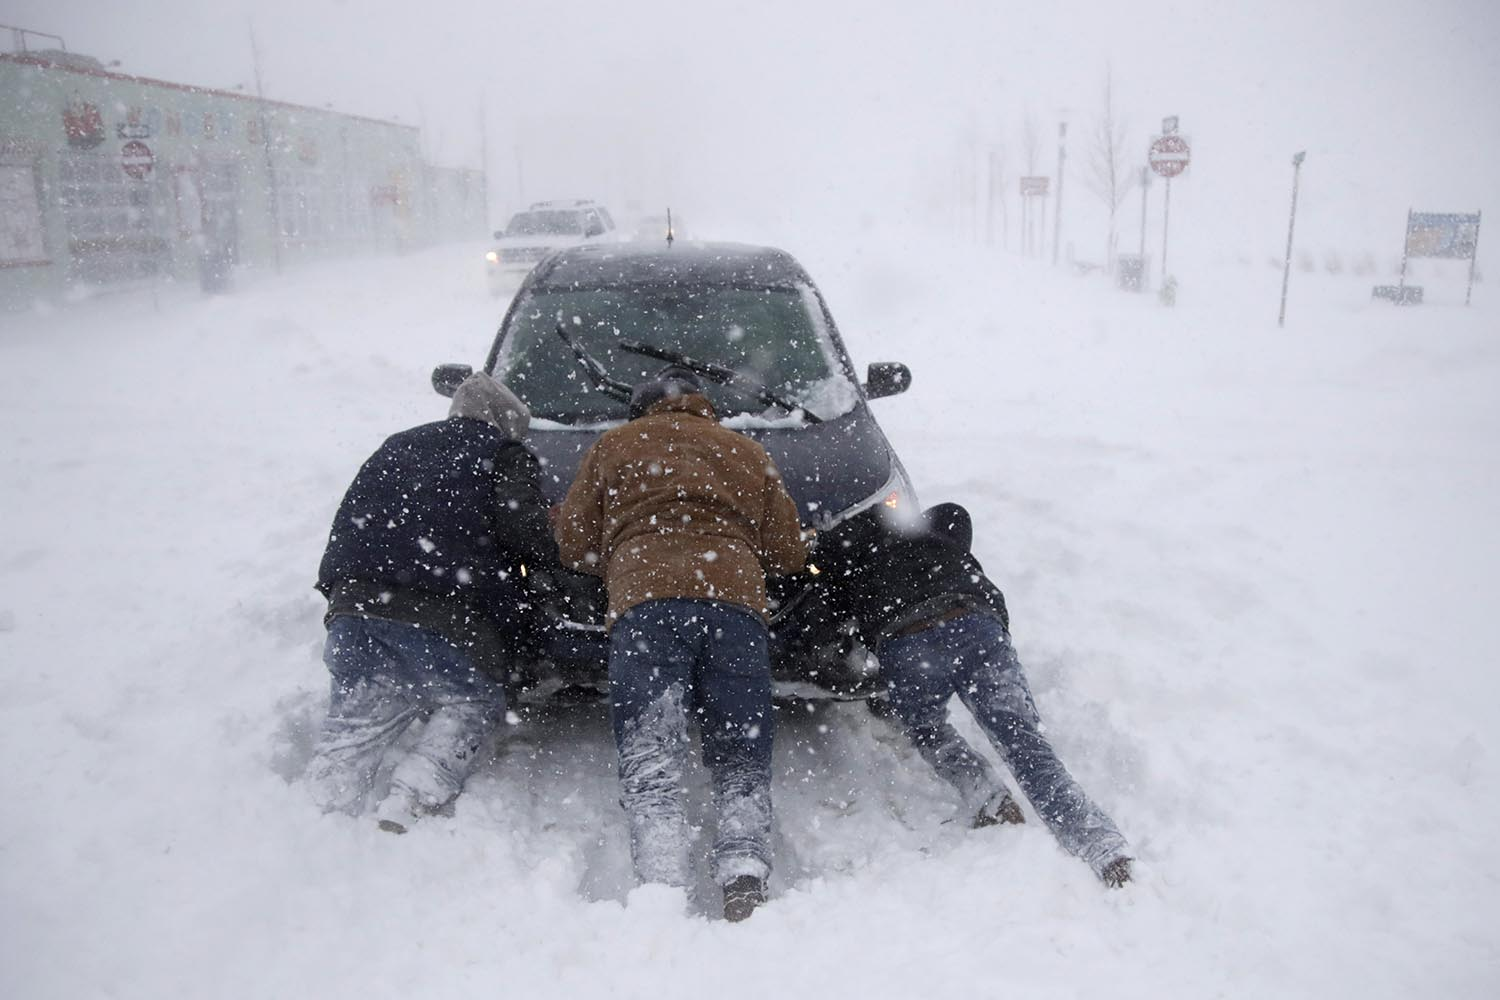 "<div class=""meta image-caption""><div class=""origin-logo origin-image ap""><span>AP</span></div><span class=""caption-text"">A group of men help a motorist after his vehicle was stuck in the snow near Asbury Park boardwalk during a snowstorm, Thursday, Jan. 4, 2018, in Asbury Park, N.J. (AP Photo/Julio Cortez)</span></div>"